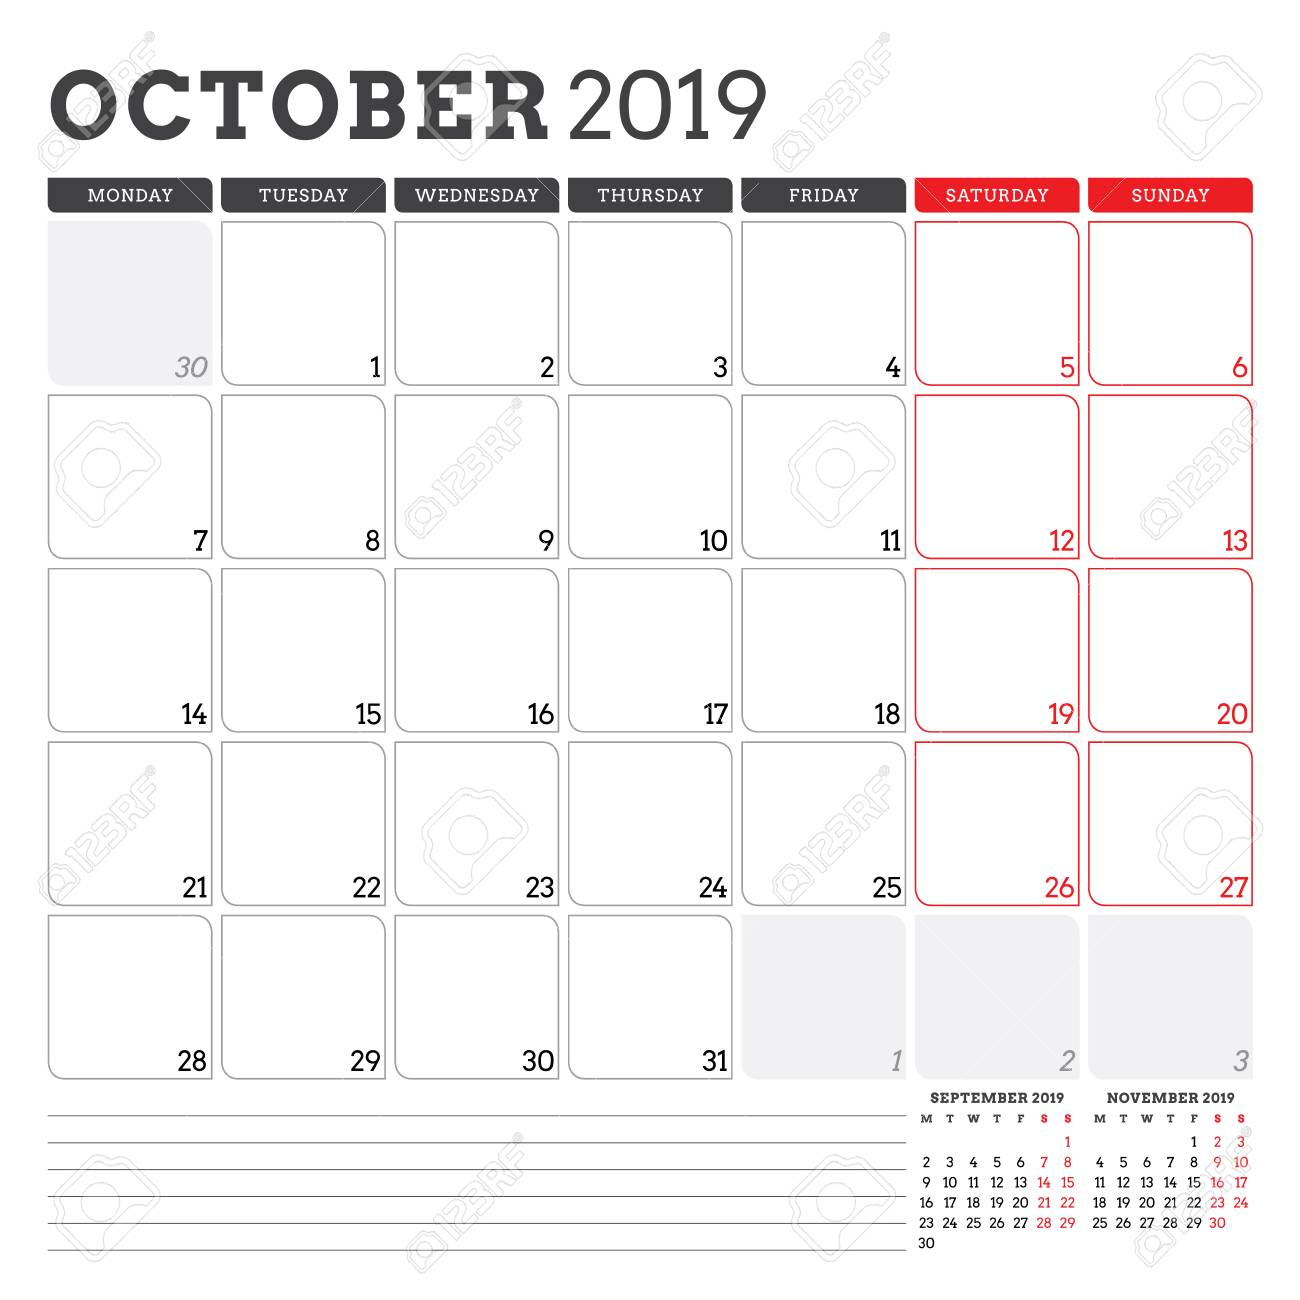 Calendar Planner For October 2019. Week Starts On Monday. Printable..